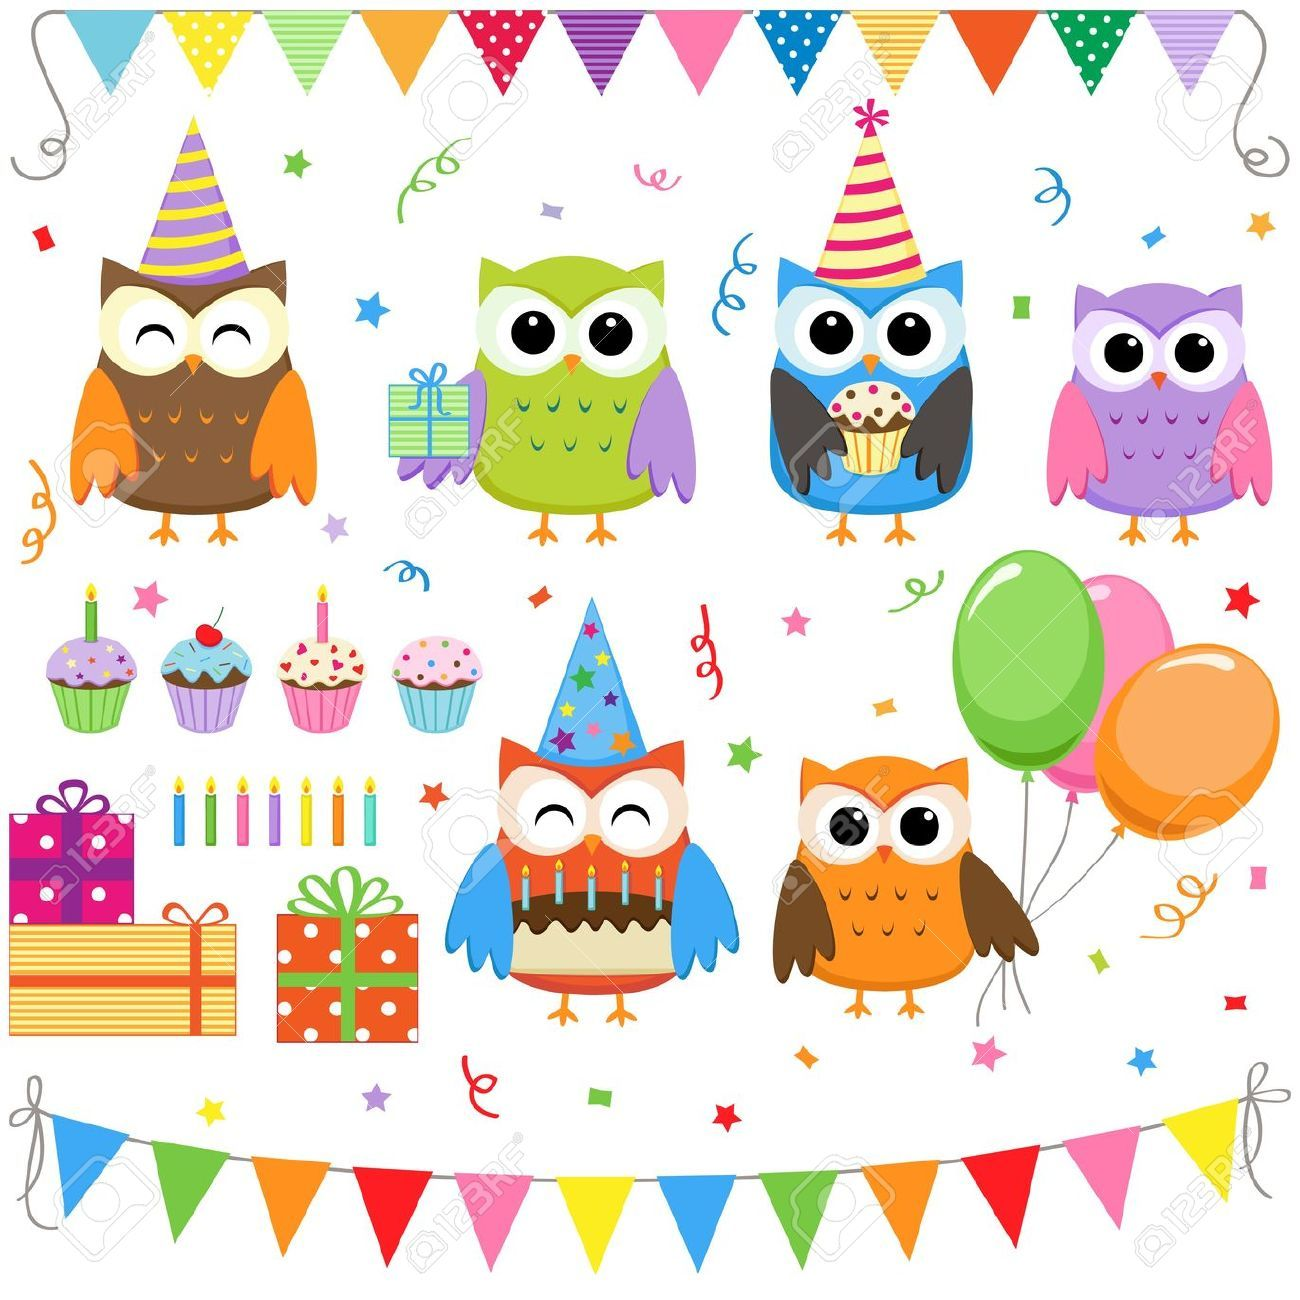 set of vector birthday party elements with cute owls royalty free